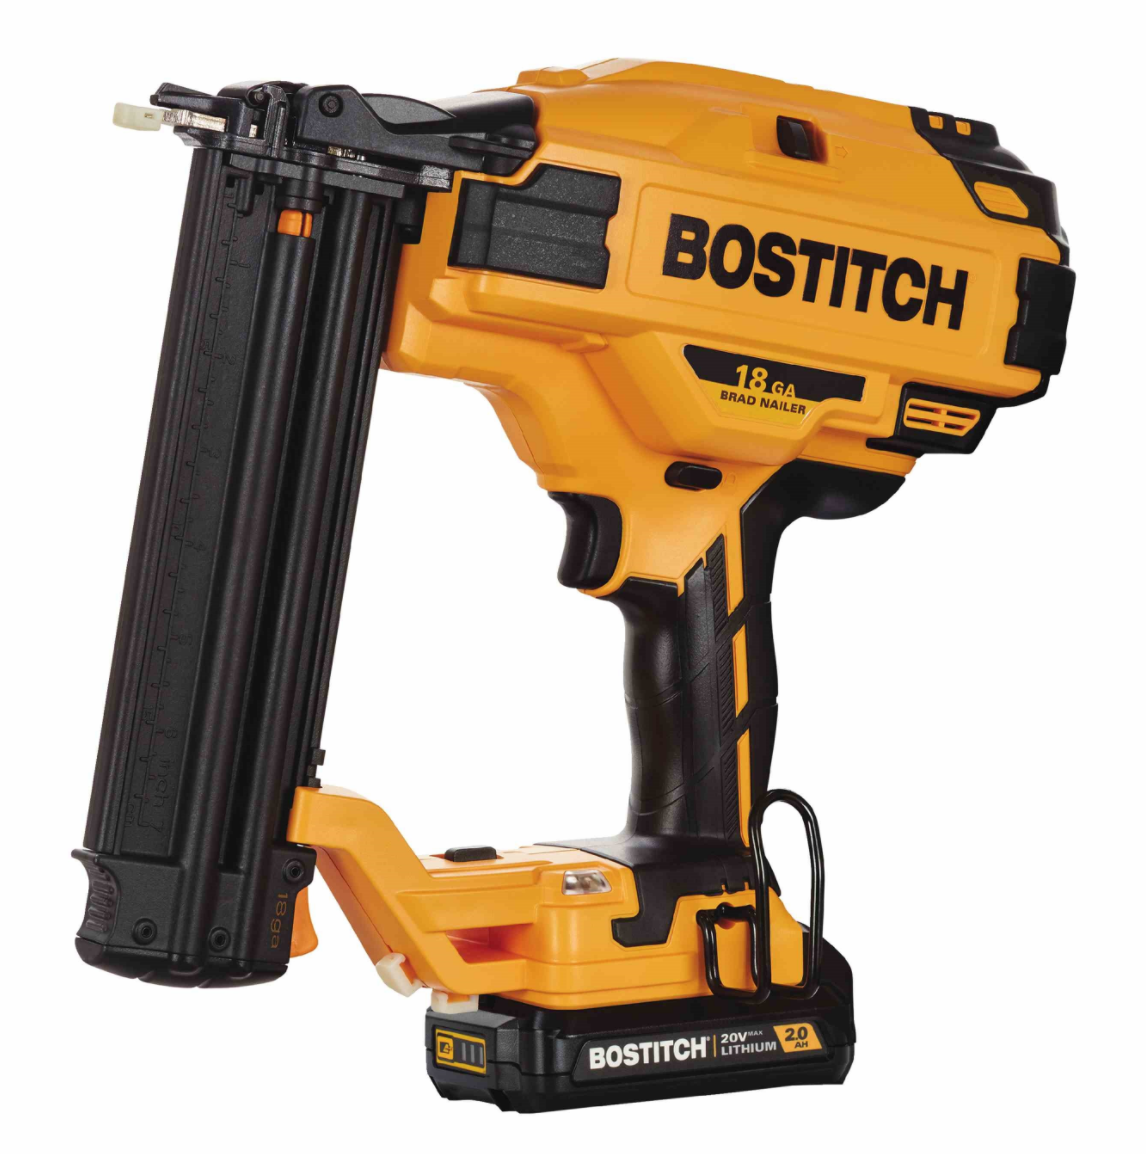 BOSTITCH 20V MAX Cordless Nailers - Contractor Supply Magazine